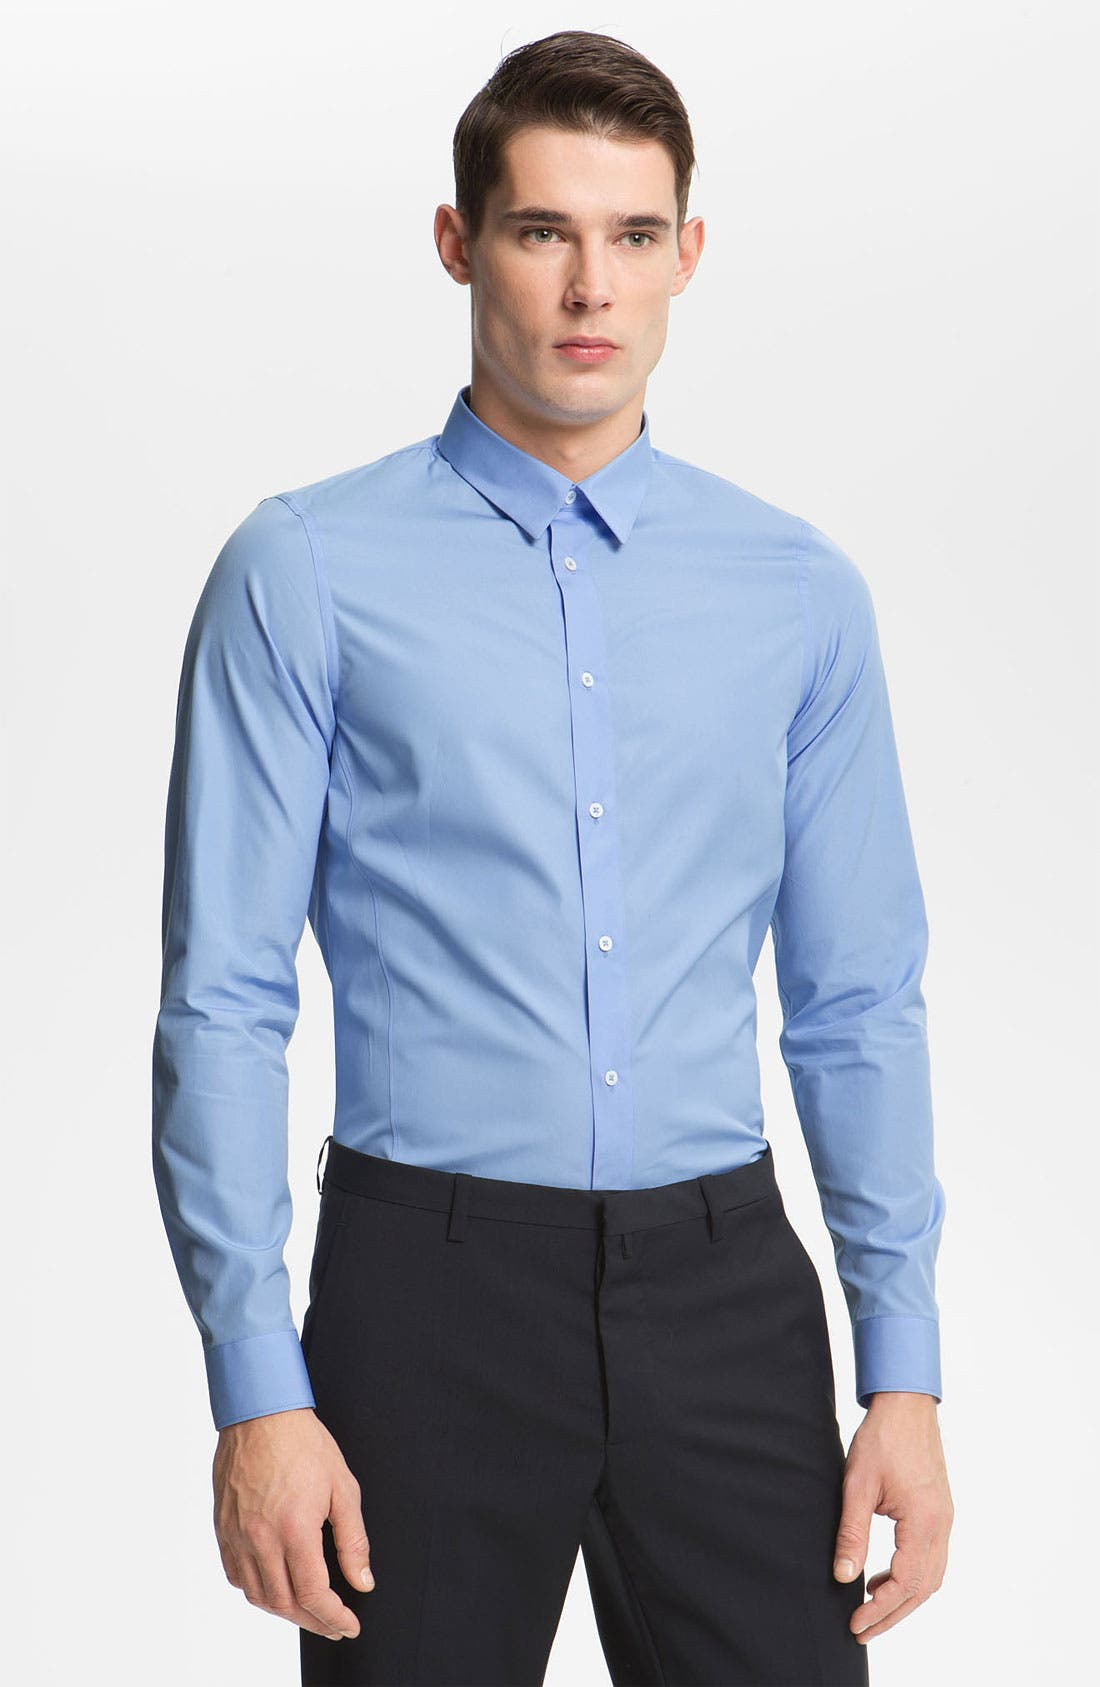 Alternate Image 1 Selected - Jil Sander Poplin Dress Shirt